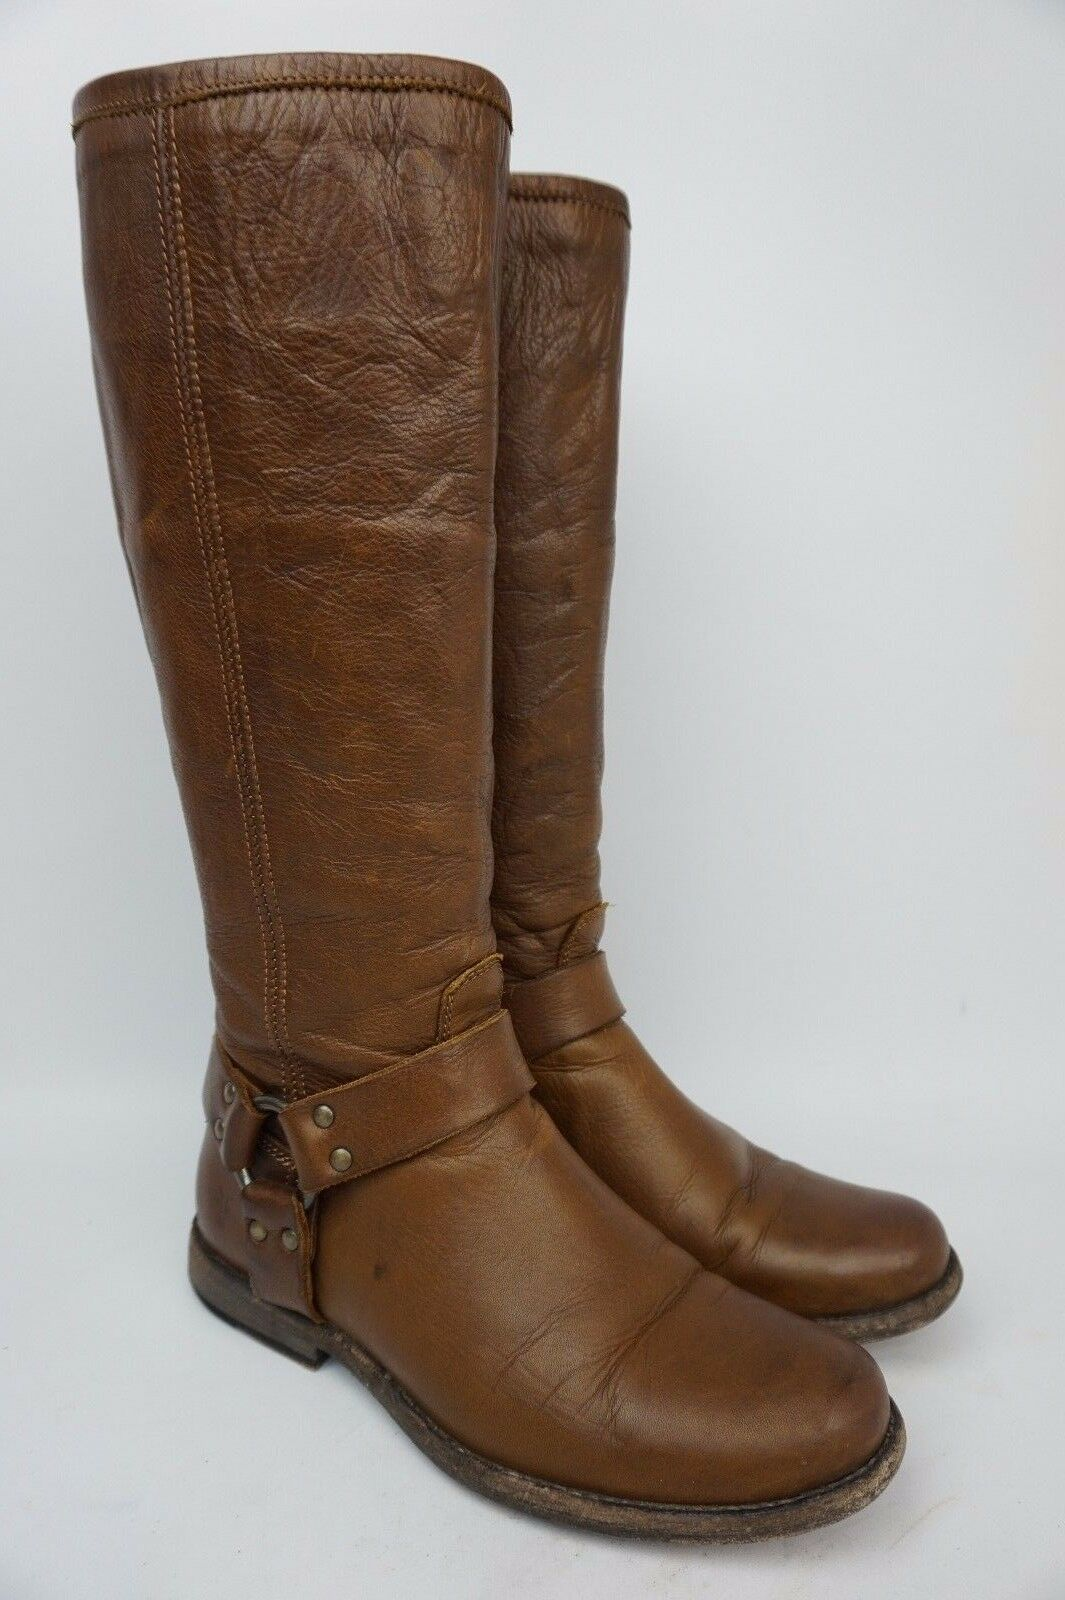 Frye Women's Phillip Harness Tall Washed Cognac Soft Leather Boots Size 7.5